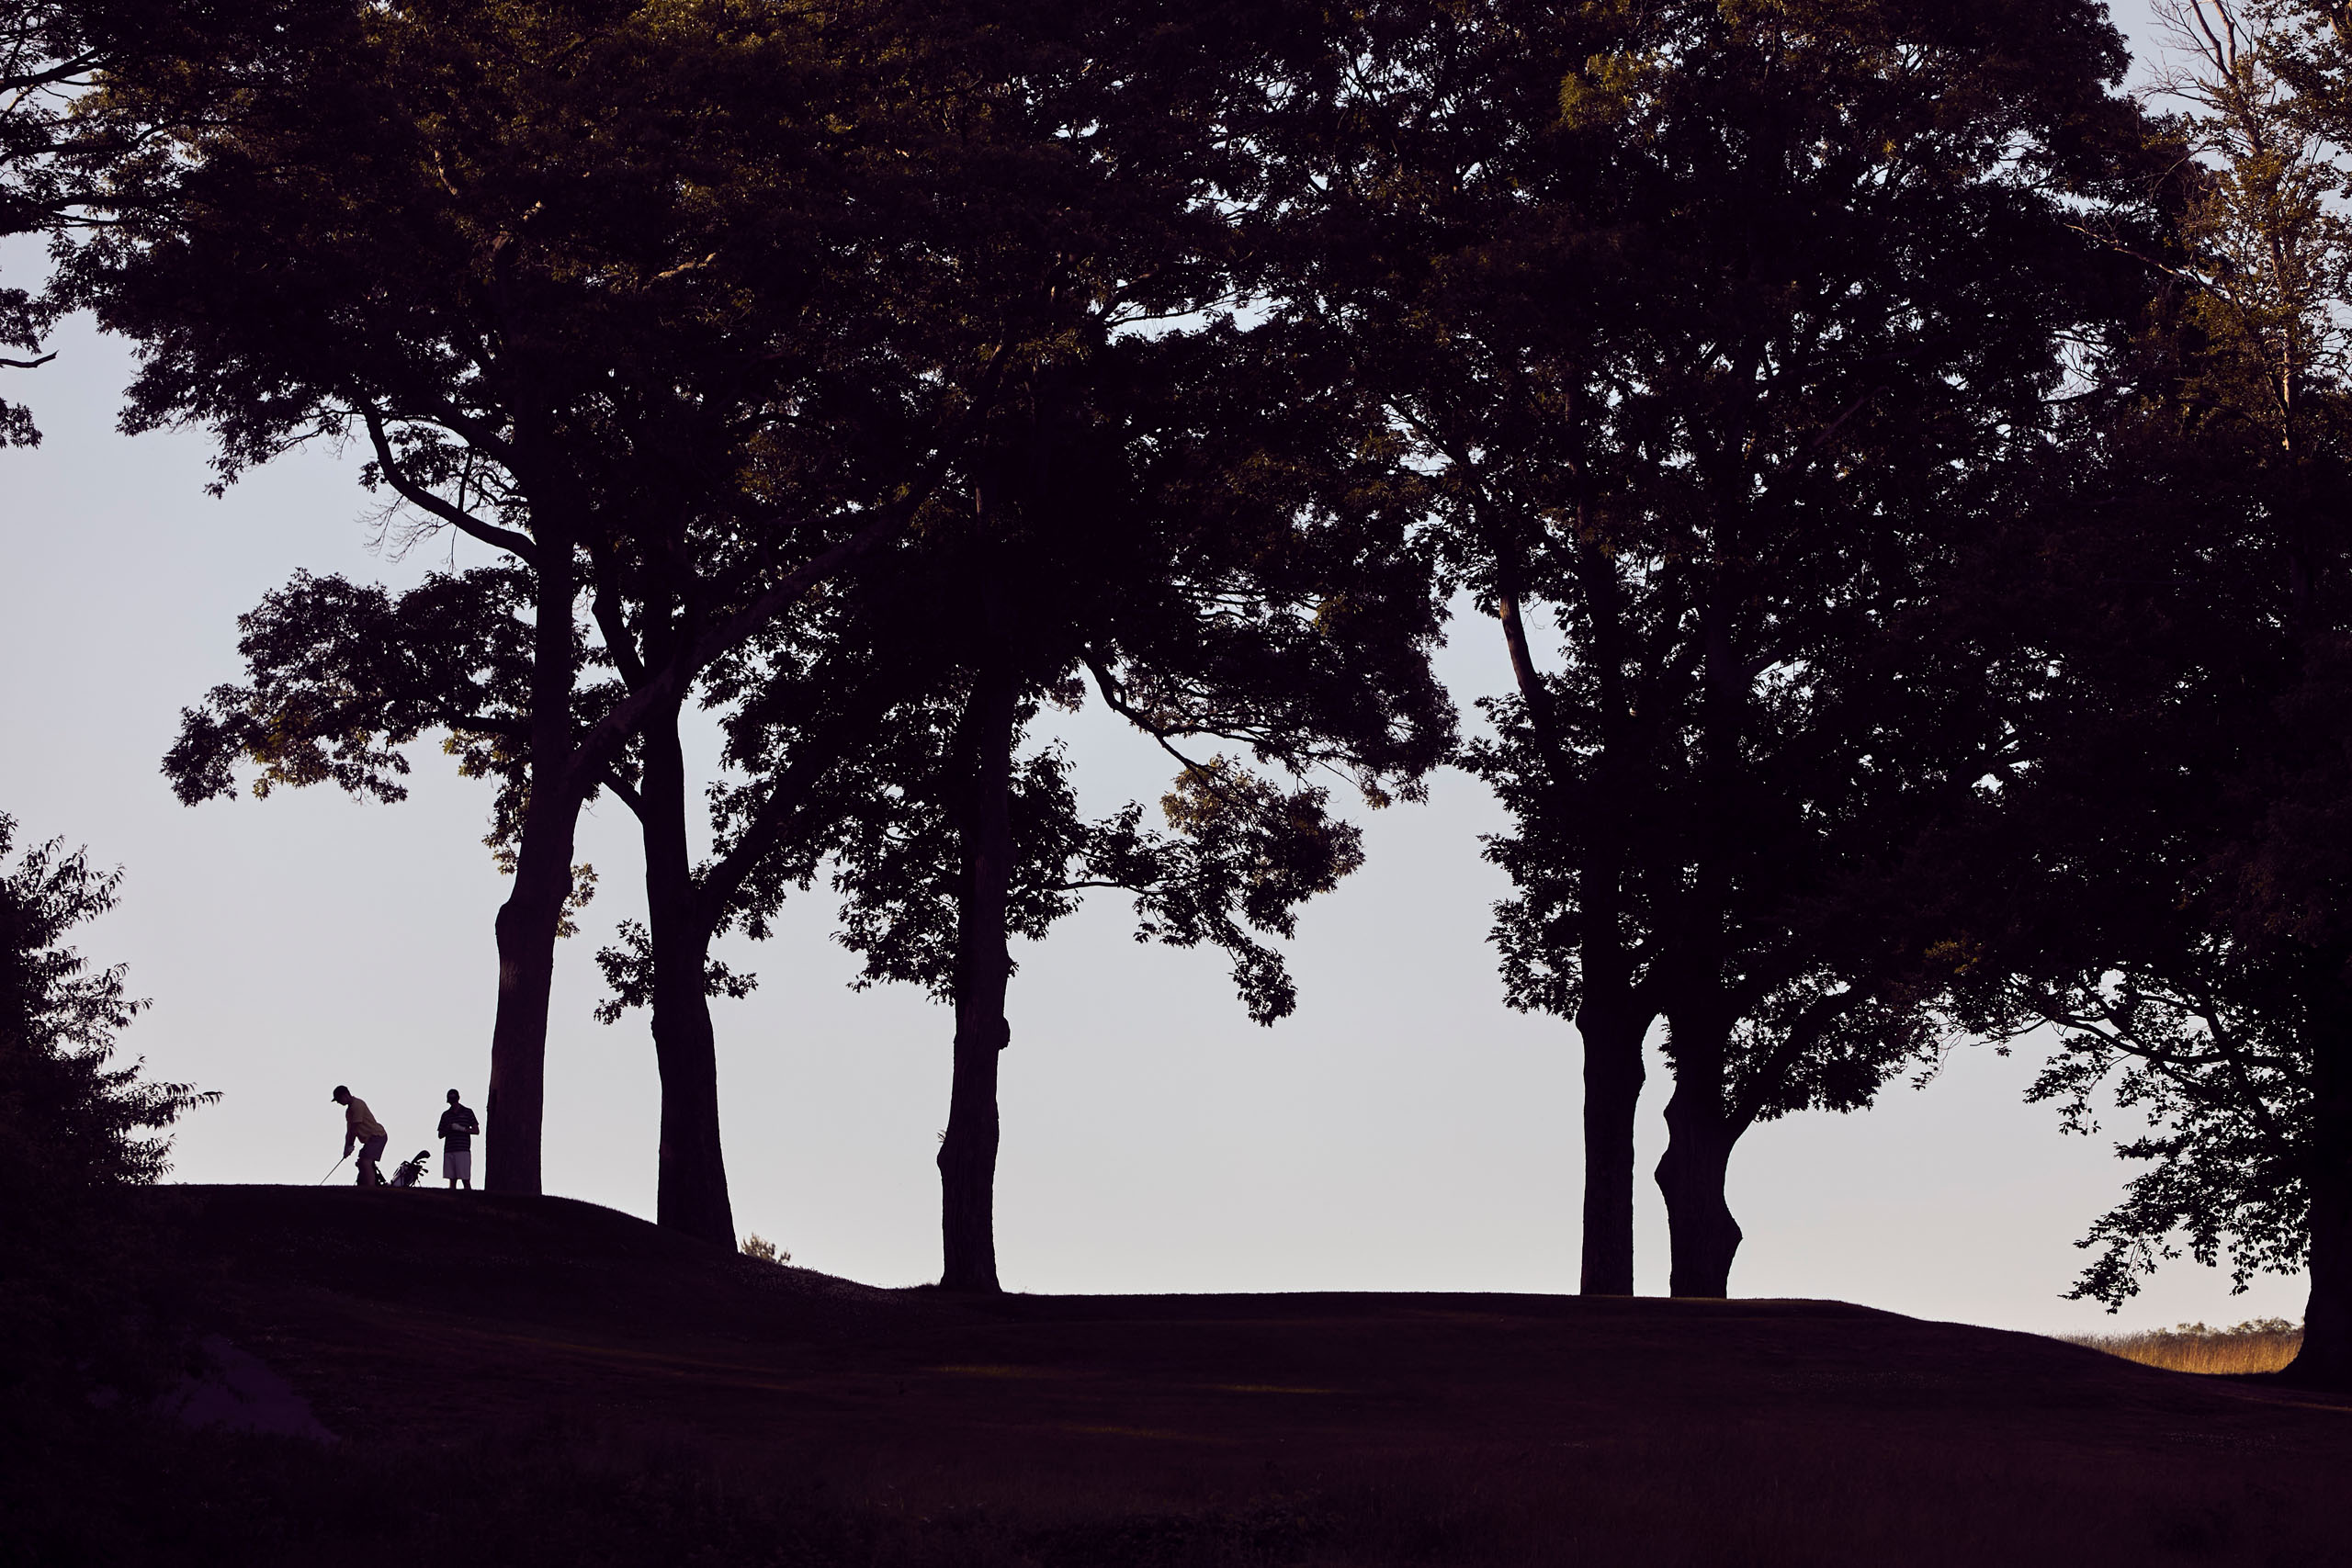 """In 1976, The Boston Globe reported that Franklin Park's fading golf course was """"a goner."""" Through force of will from a passionate group of locals and a few dedicated public officials, today Heller estimates the course hosts around 37,000 rounds per year. Photo by John Huet"""